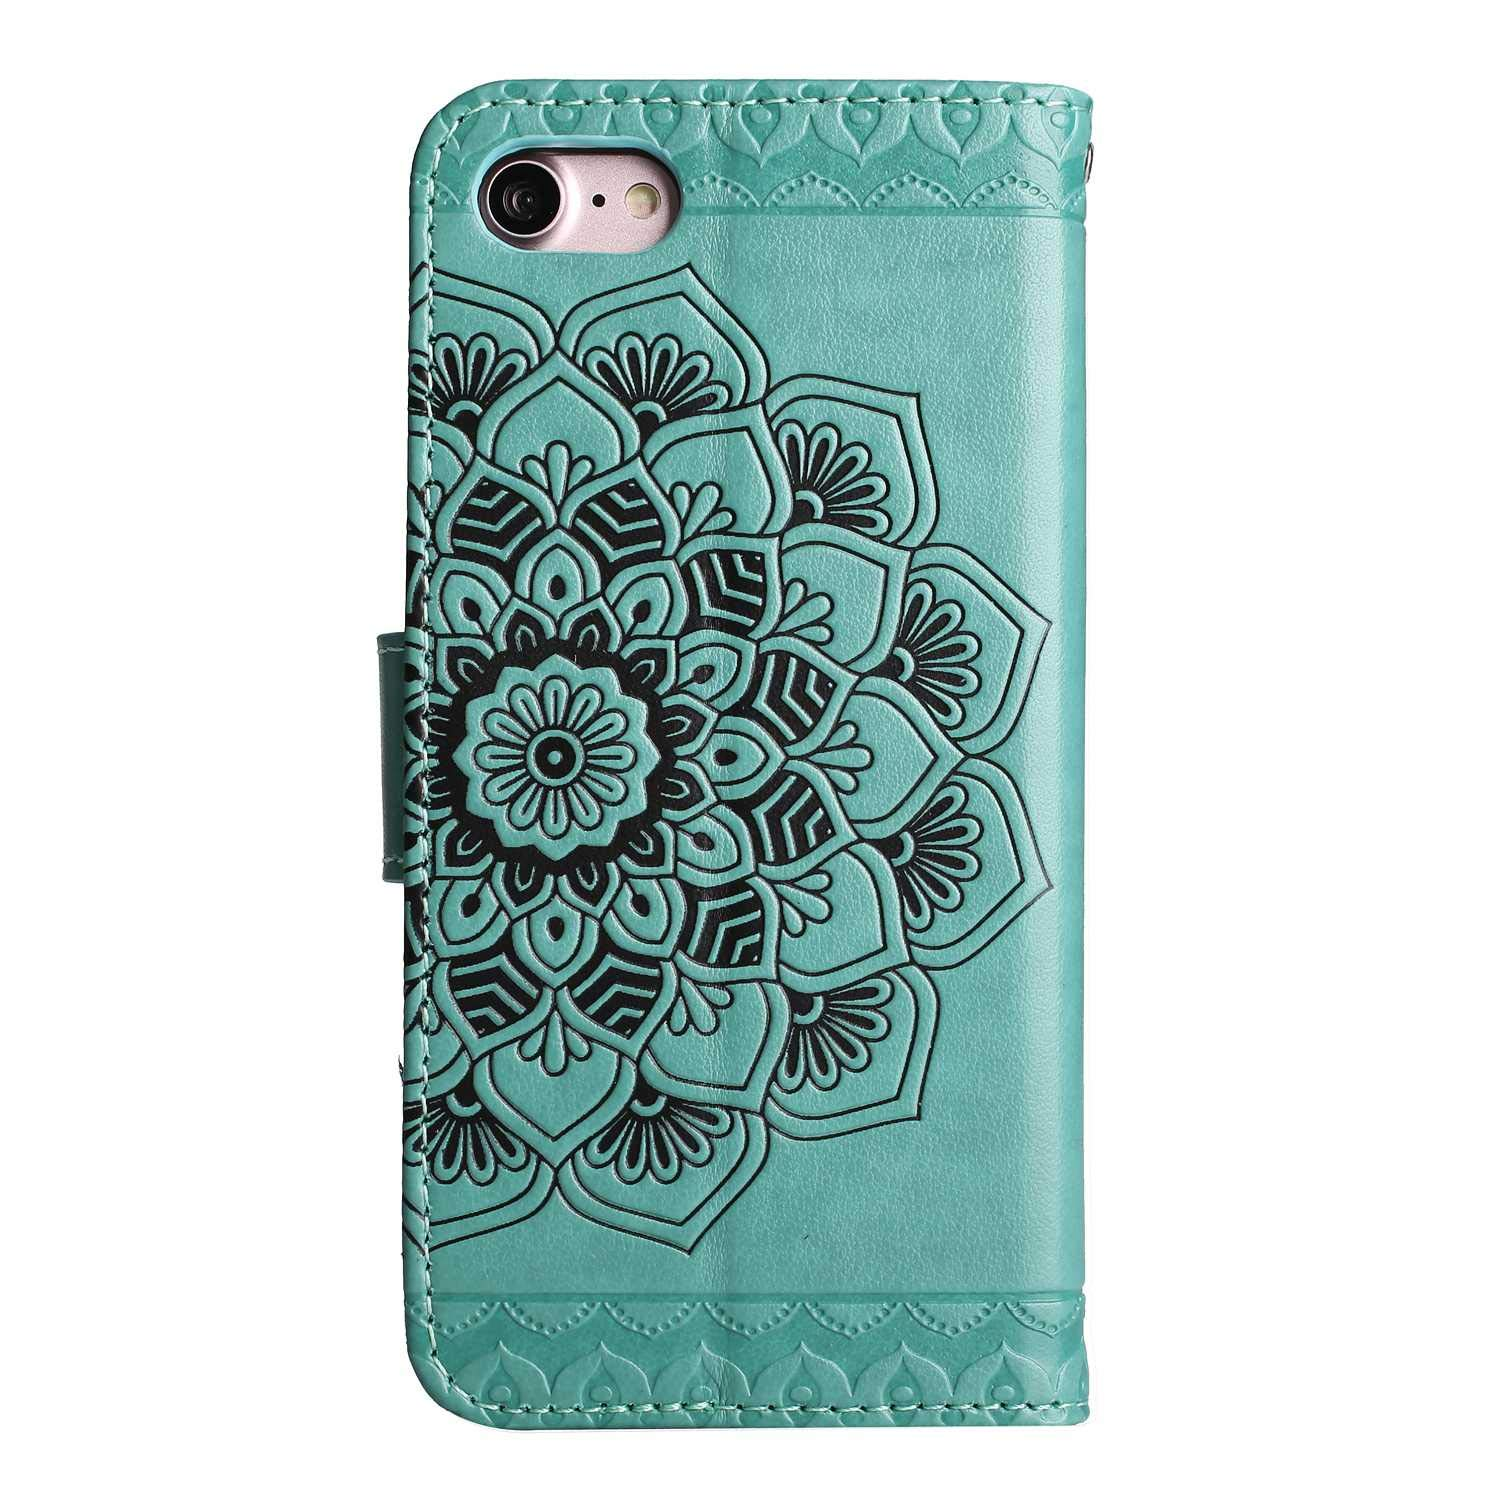 iPhone 7 UNEXTATI 3D Emboss Mandala Flower PU Leather Flip Wallet Cover Case with Card Slots and Kickstand for Apple iPhone 7 iPhone 8 iPhone 8 Case Blue